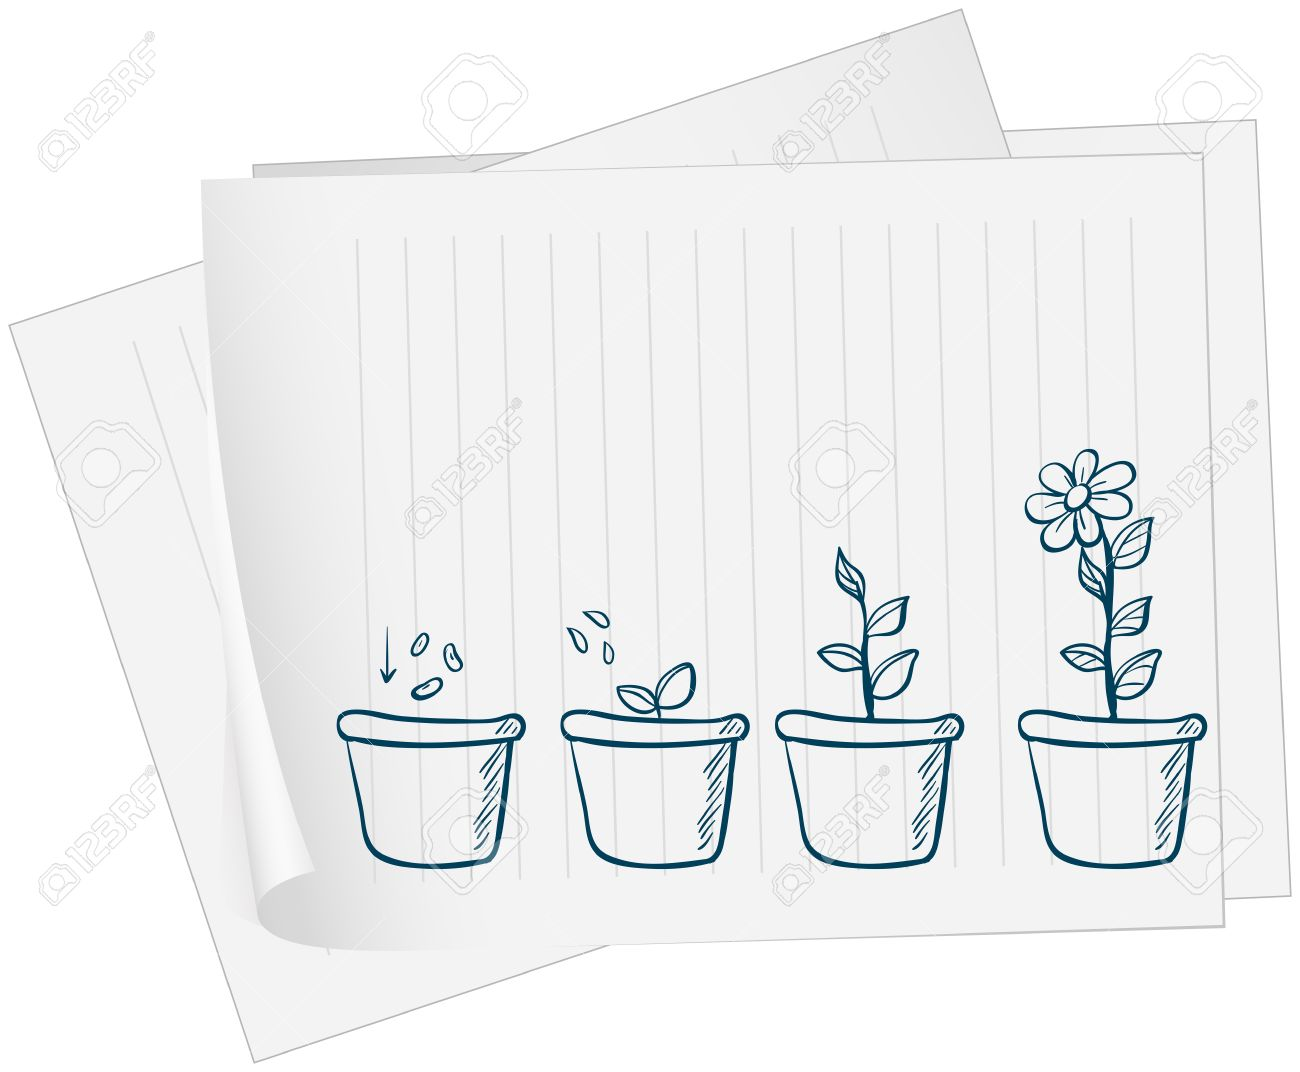 drawing of a growing plant Growing Plant Drawing